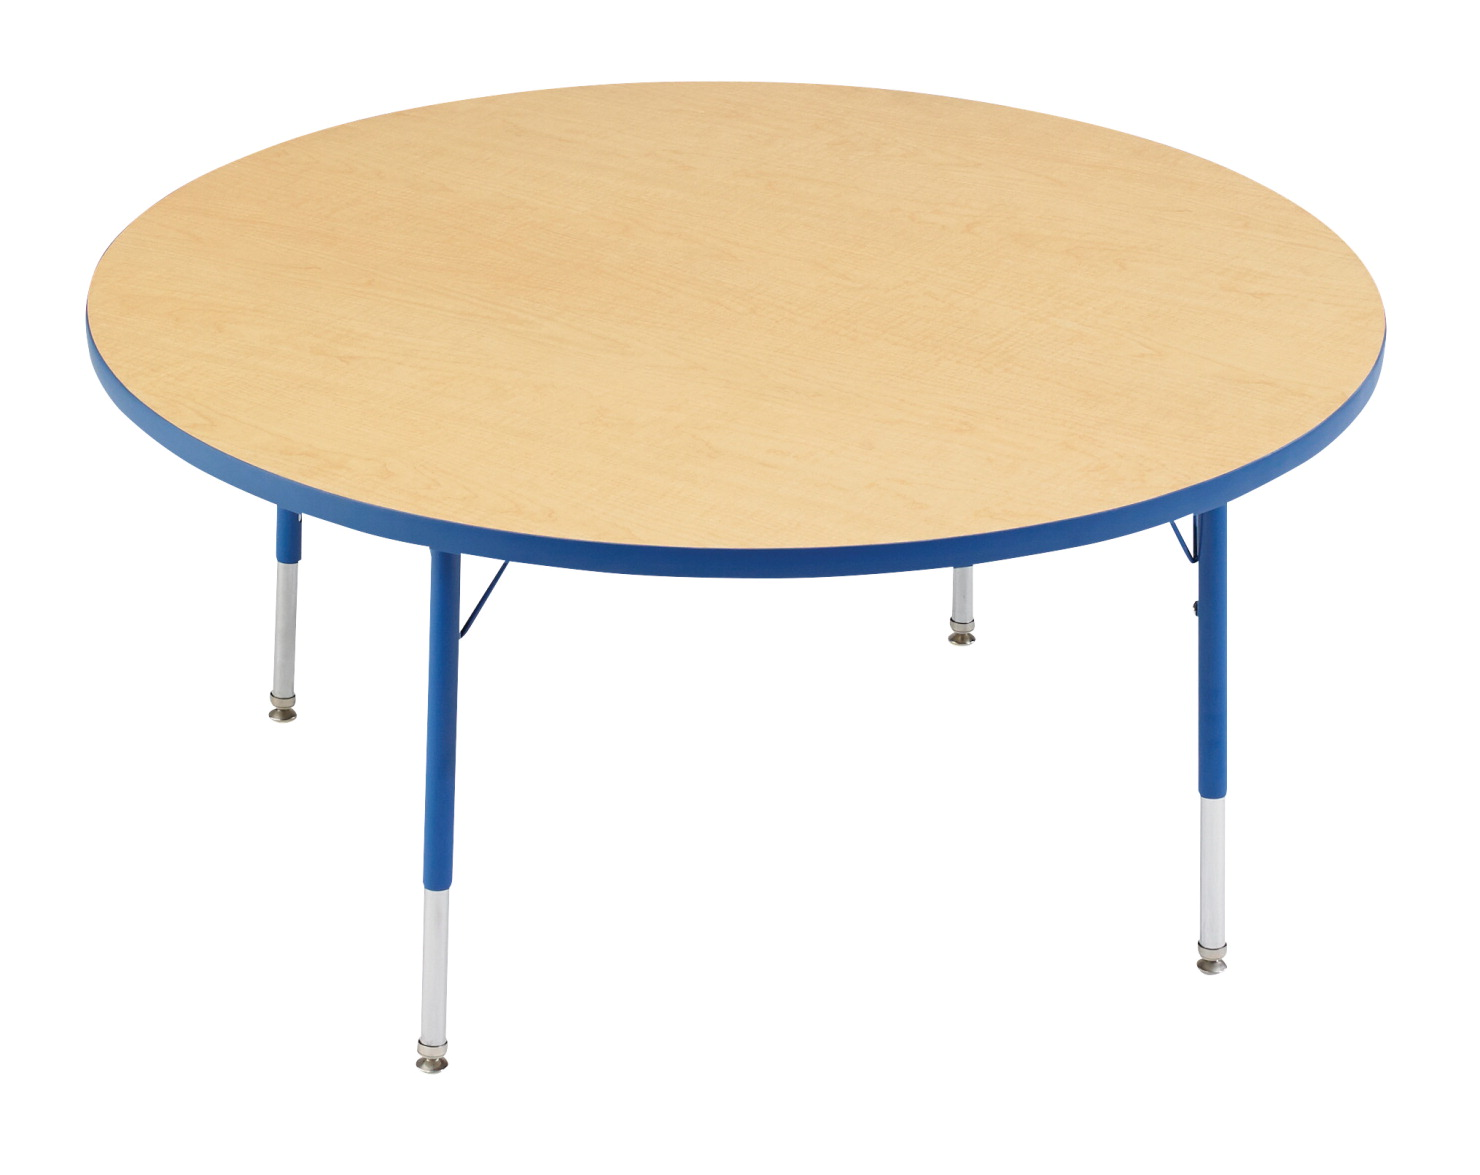 Classroom Select T-Mold Activity Table, Round, Adjustable Height, 48 Inches, Various Options